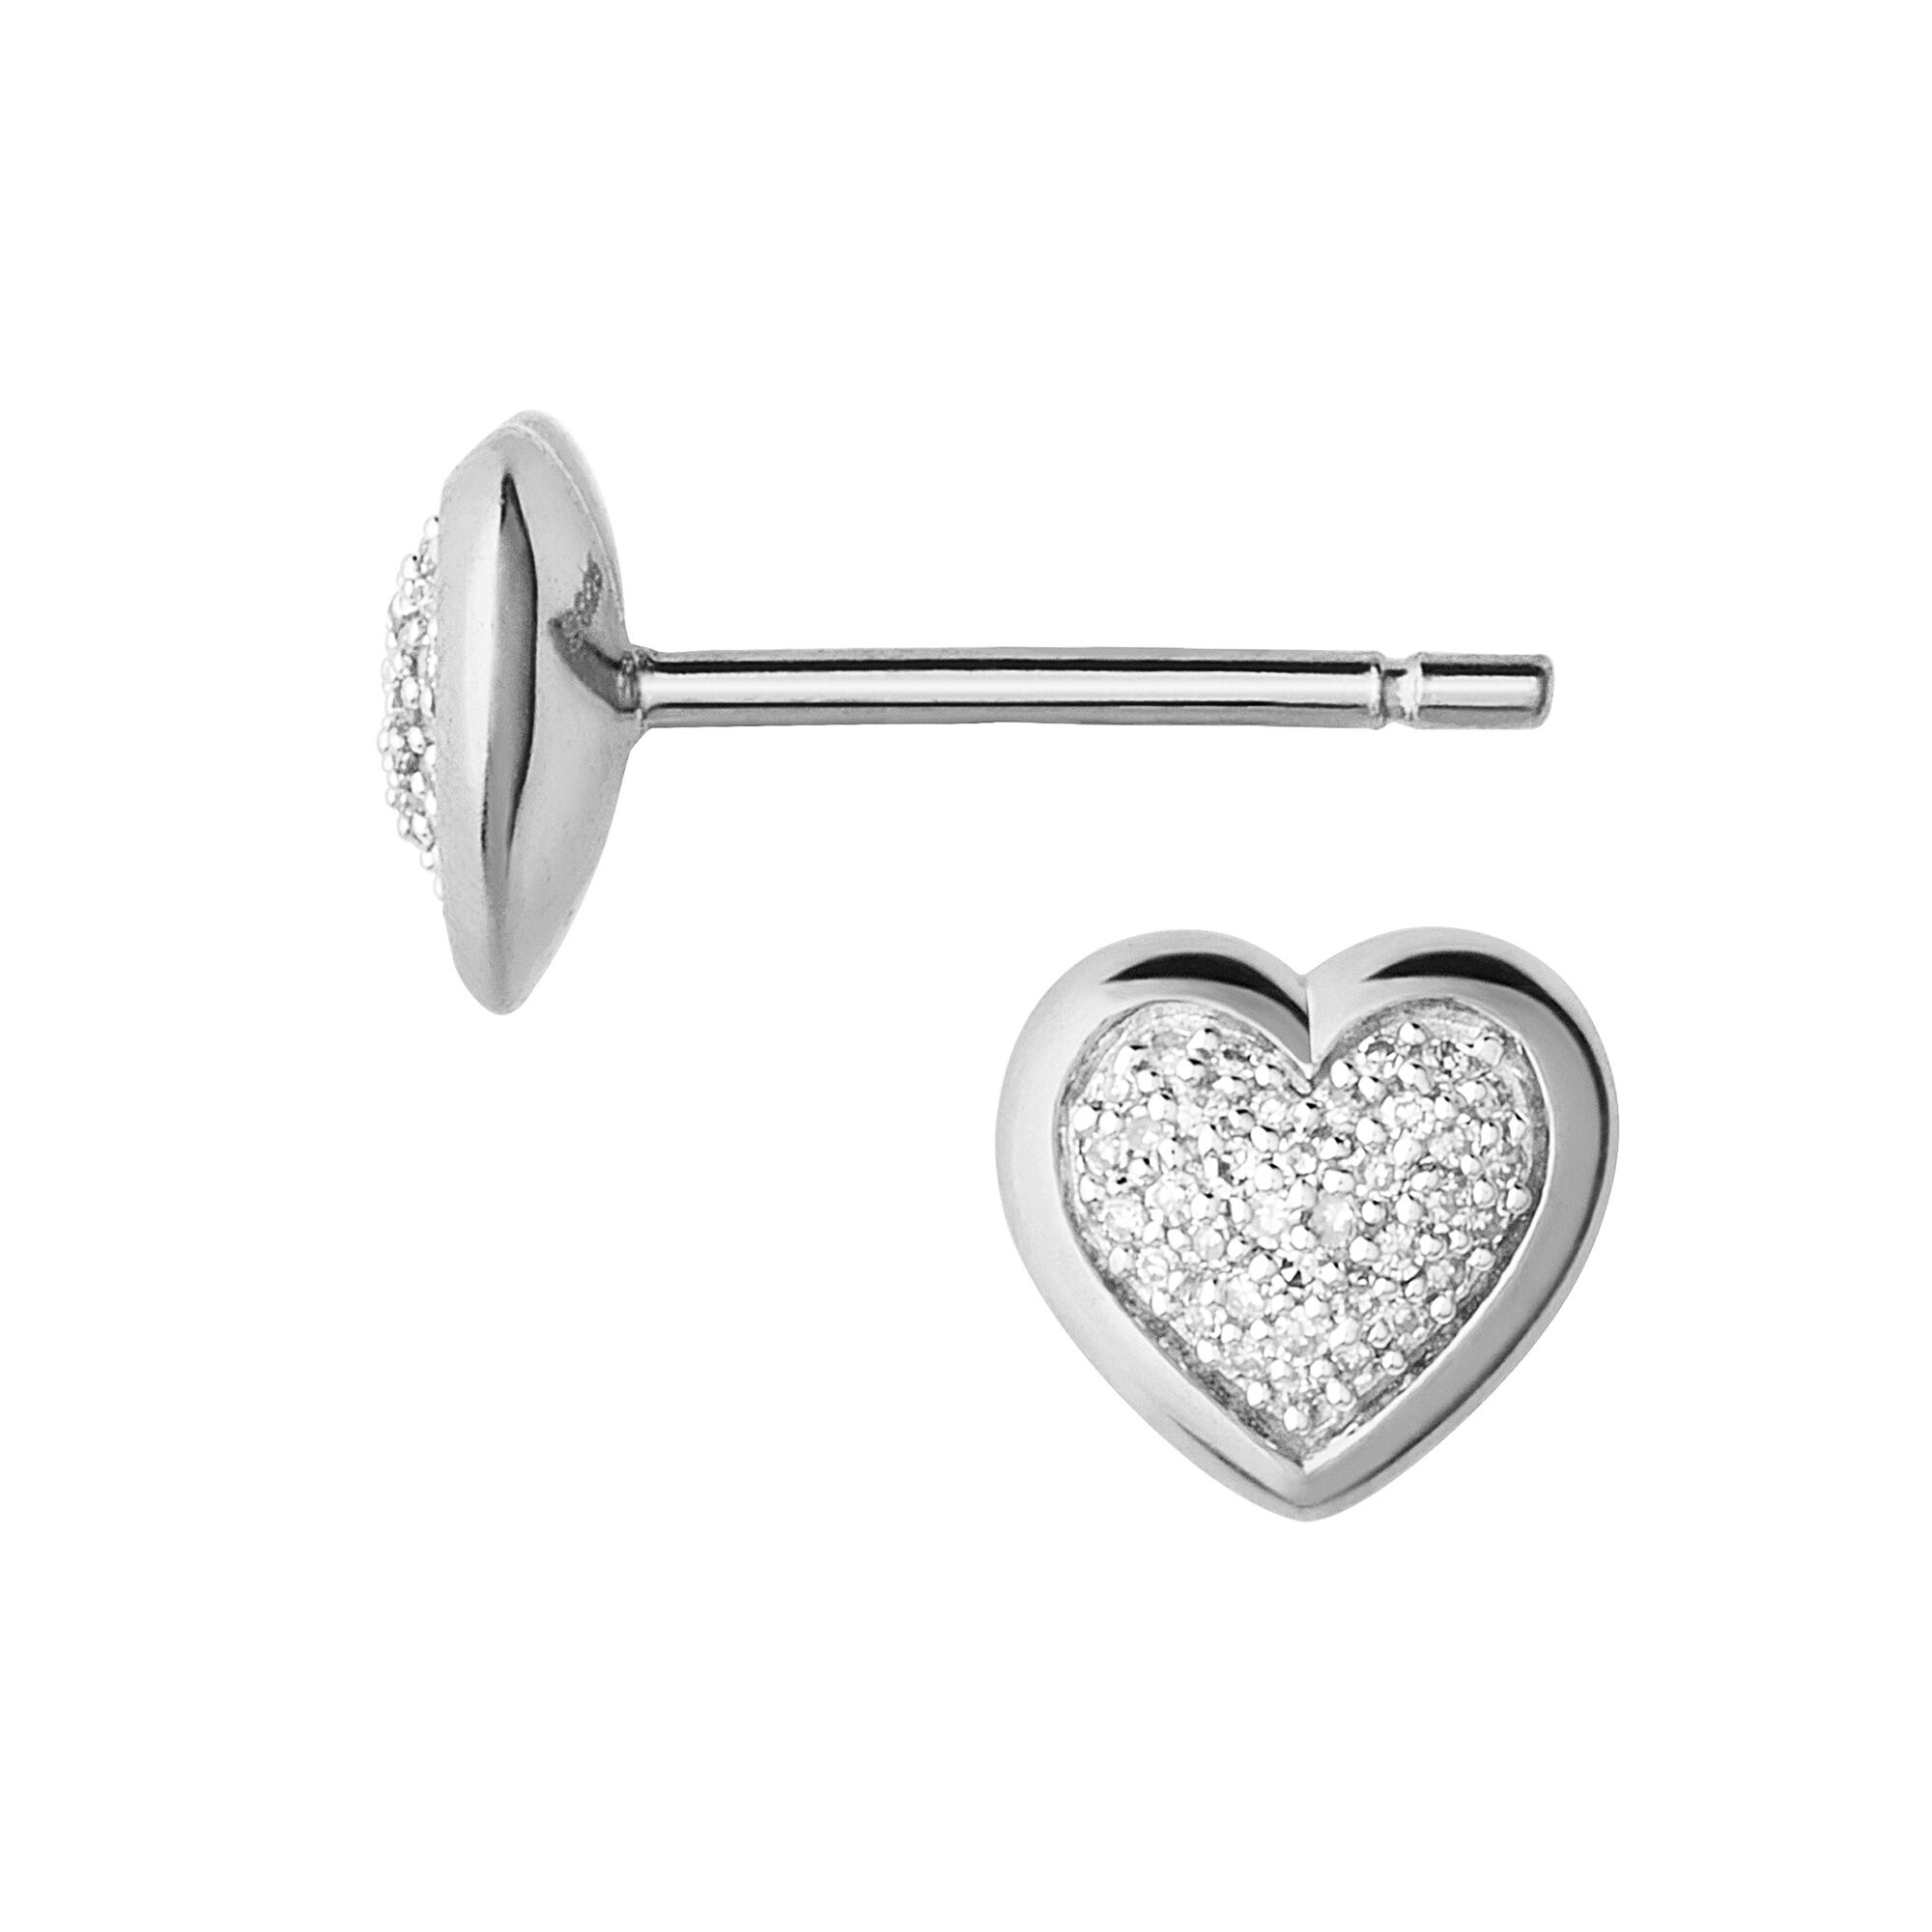 jewellery sterling earrings zoom silver earring double heart simply stud